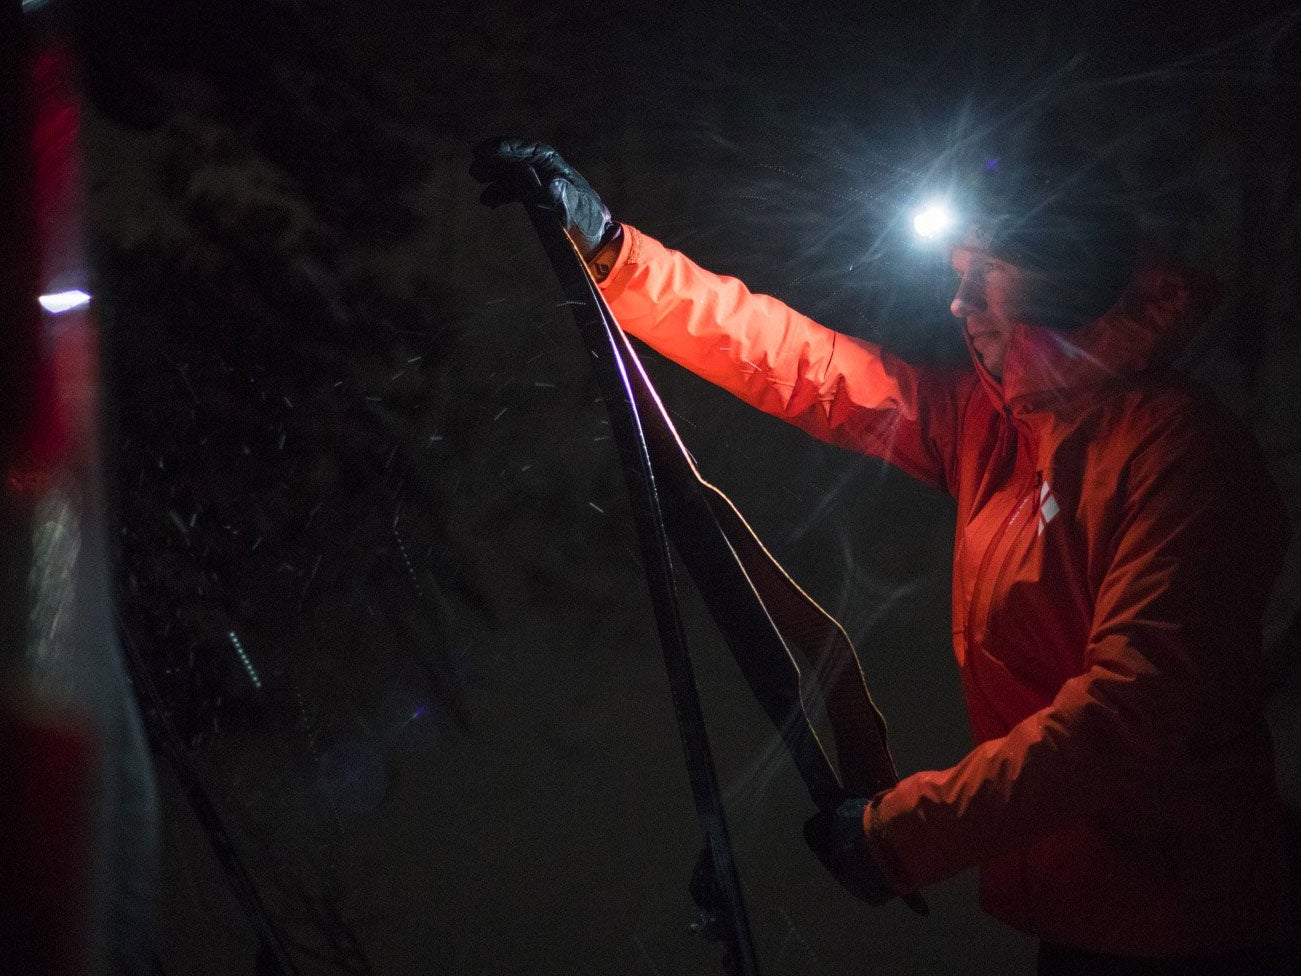 Four Features You Need in Your Next Headlamp